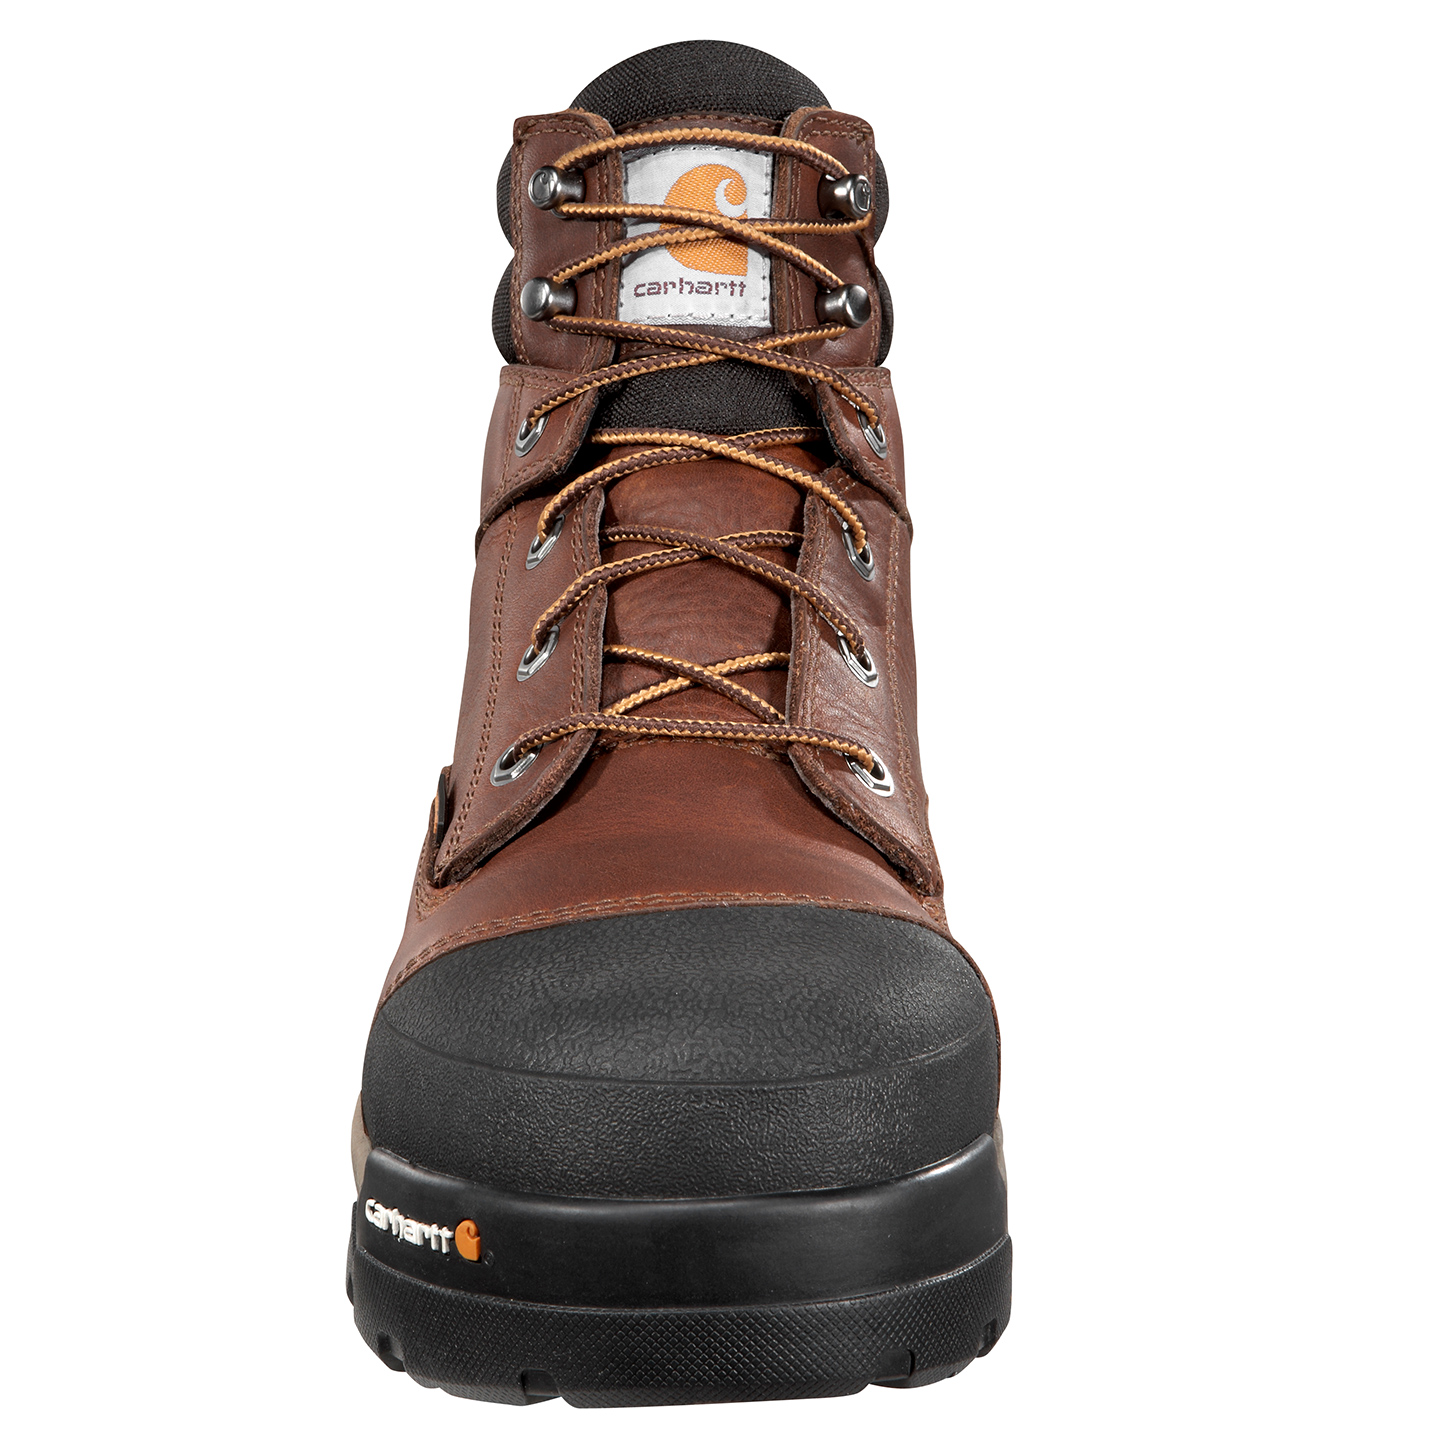 70b1435fce Loading zoom. Carhartt Ground Force Men's Composite Toe Waterproof  Electrical Hazard Brown ...